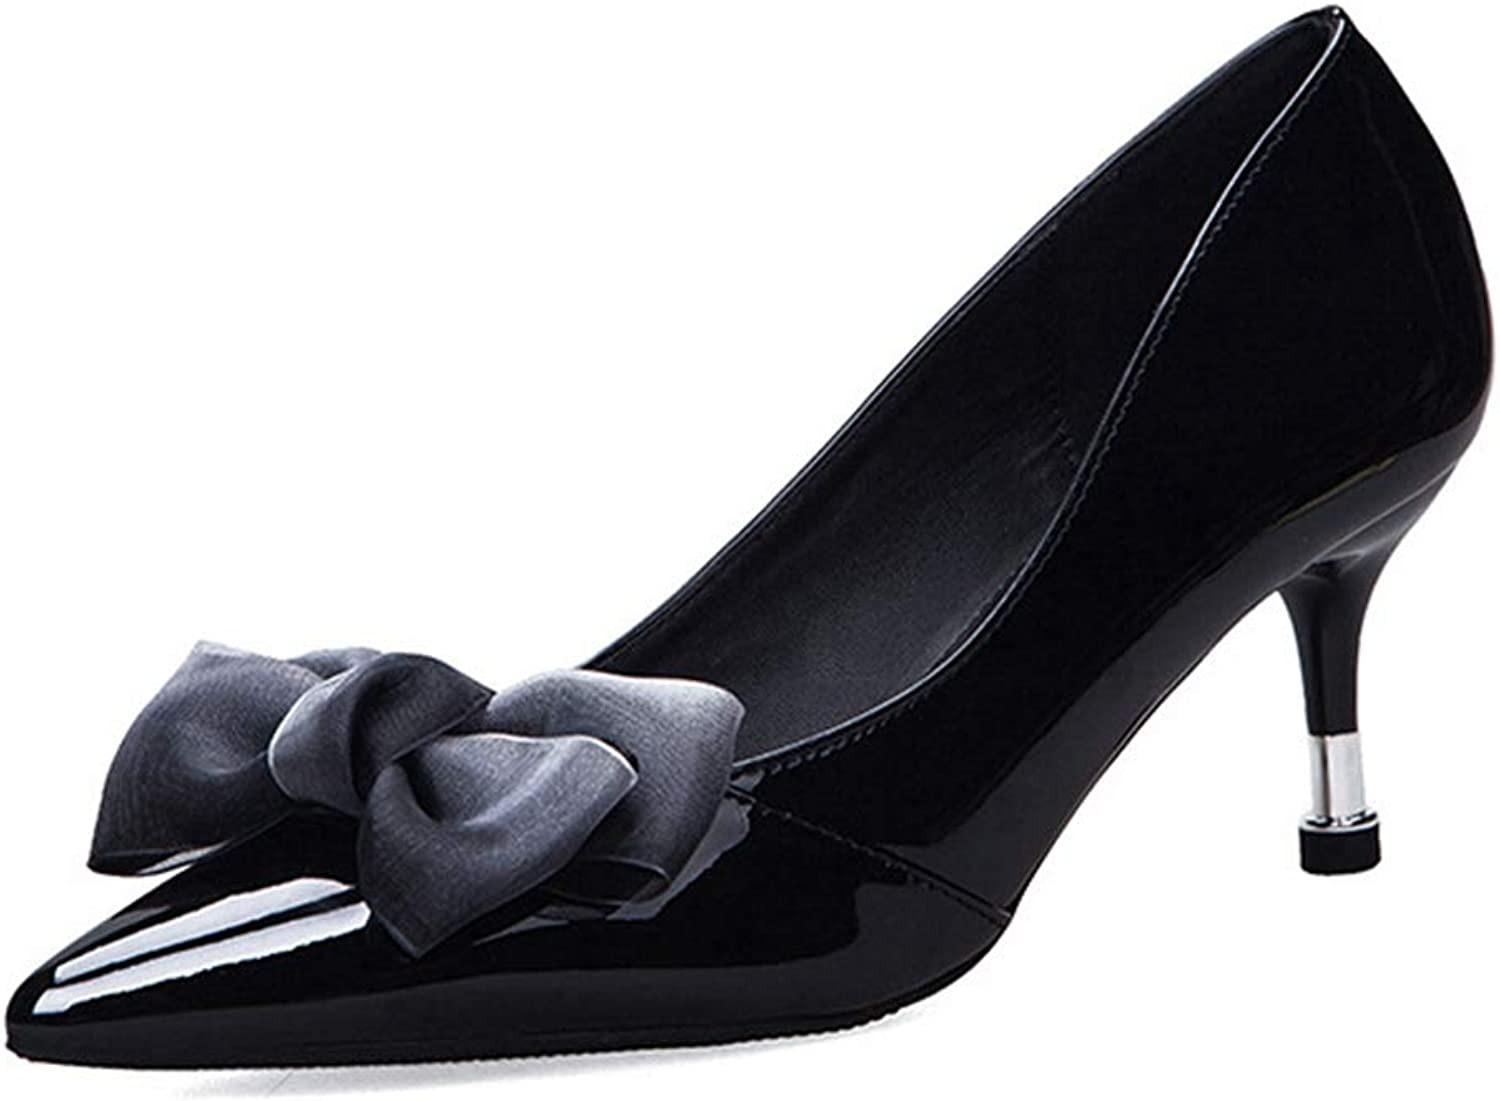 Drew Toby Women Pumps Pointed Toe Bowknot Shallow Mouth Fashion OL High Heels